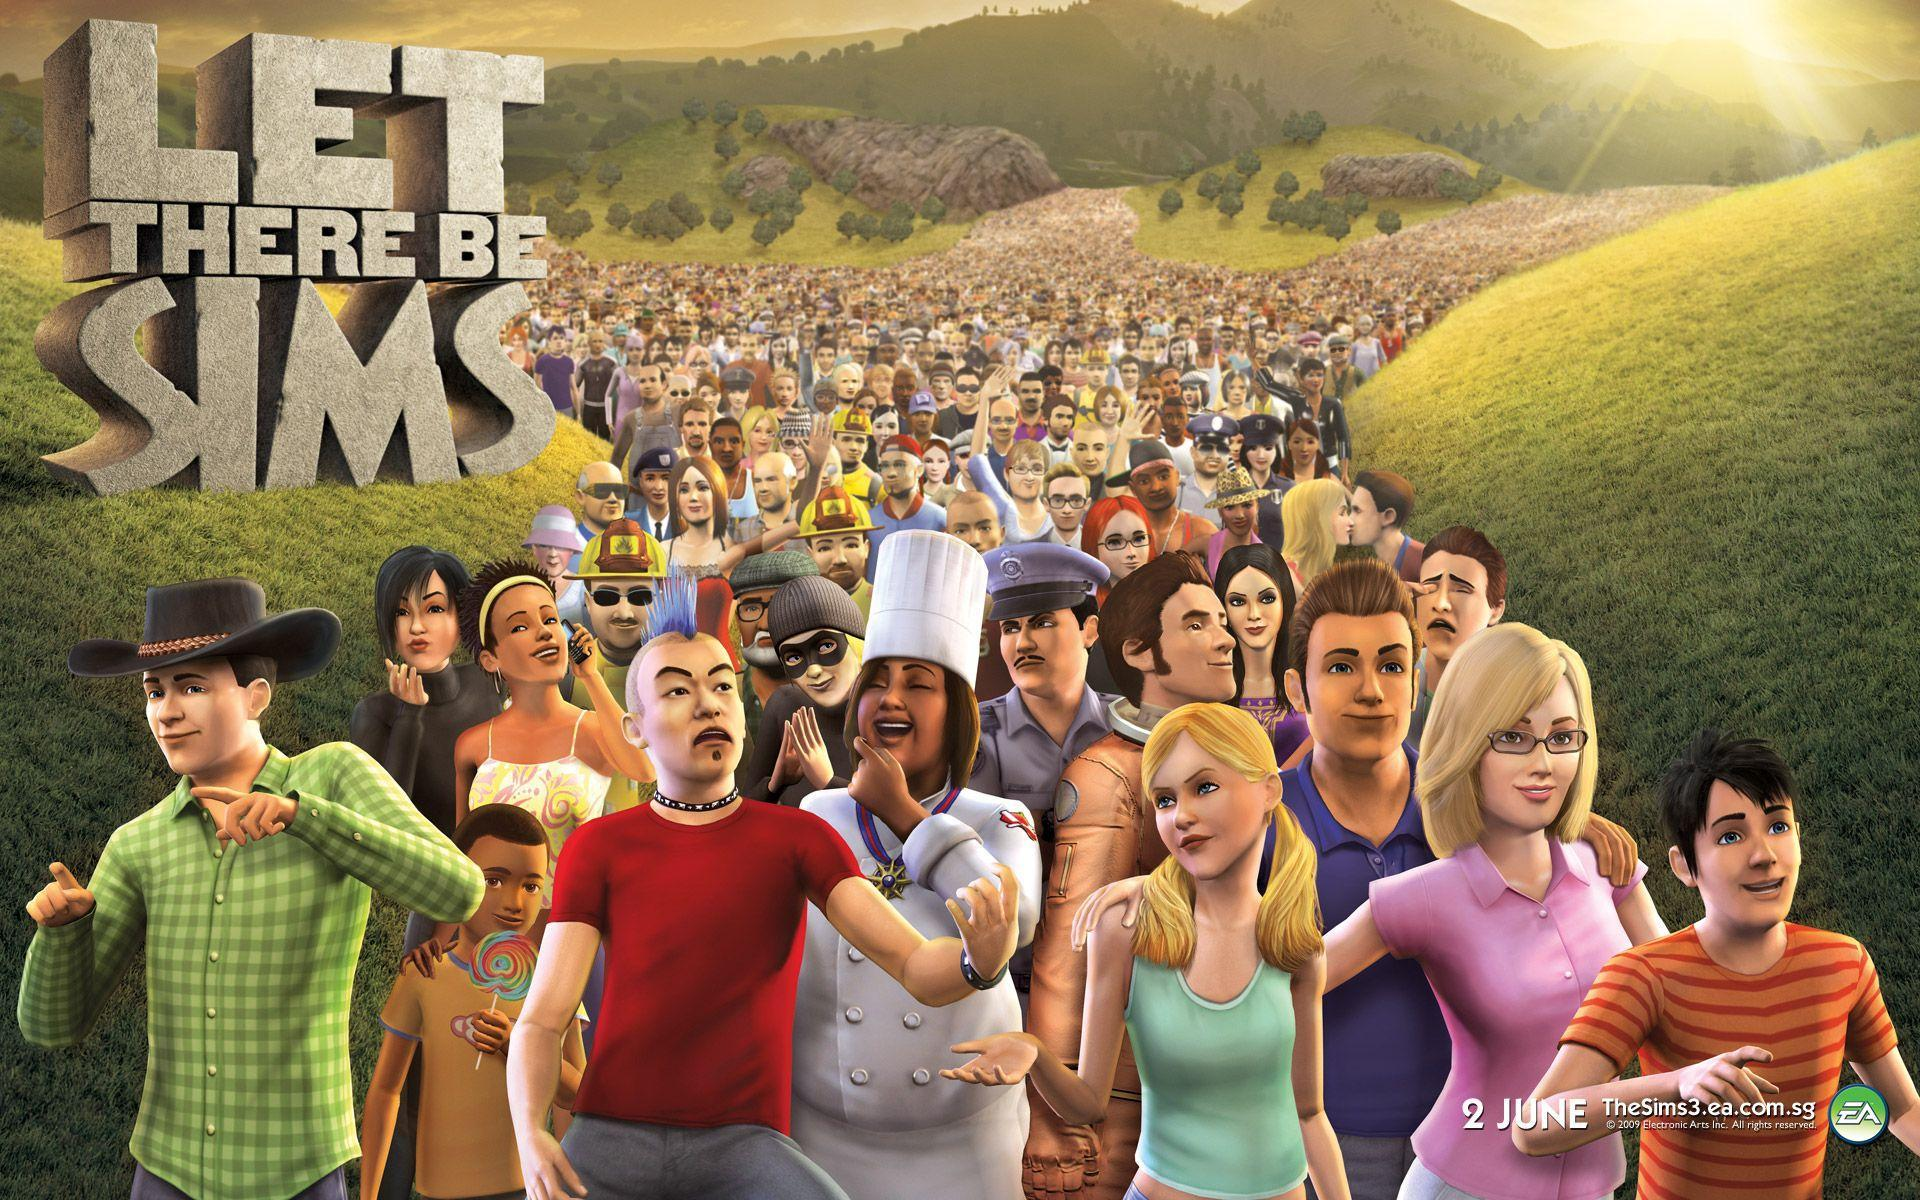 Let There Be Sims - The Sims 3 Wallpaper at Wallpaperist